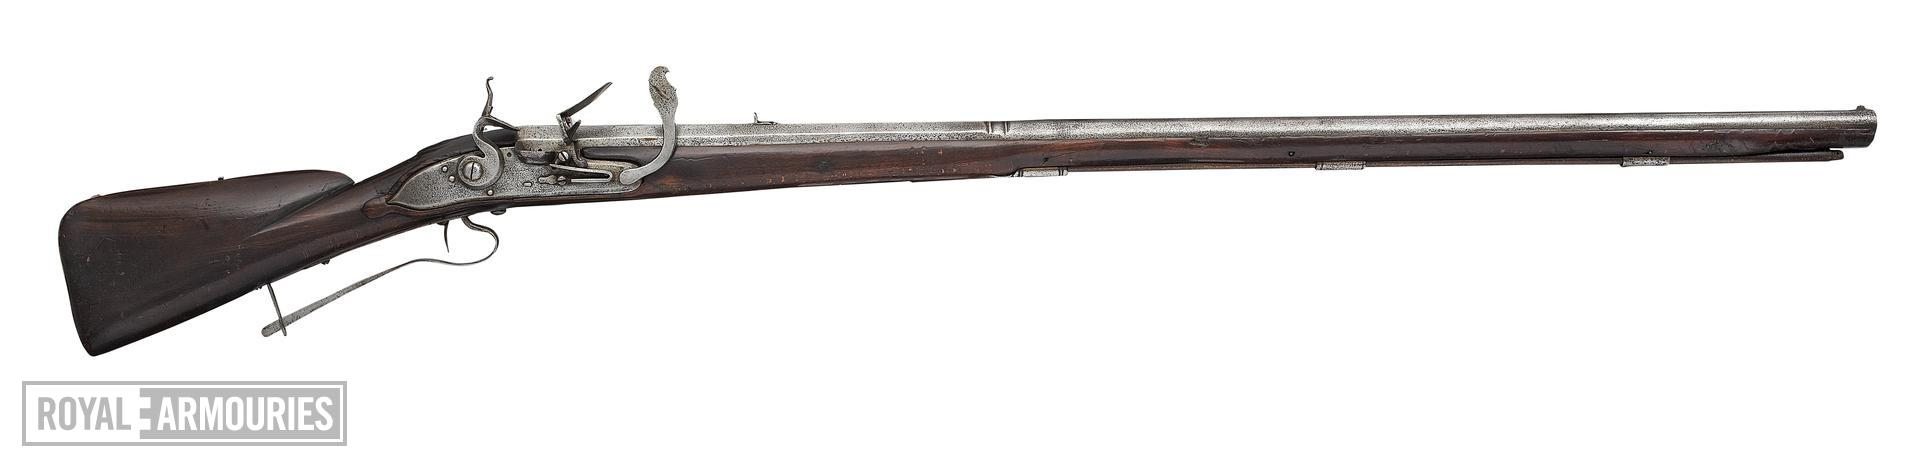 Flint and combined matchlock muzzle-loading musket